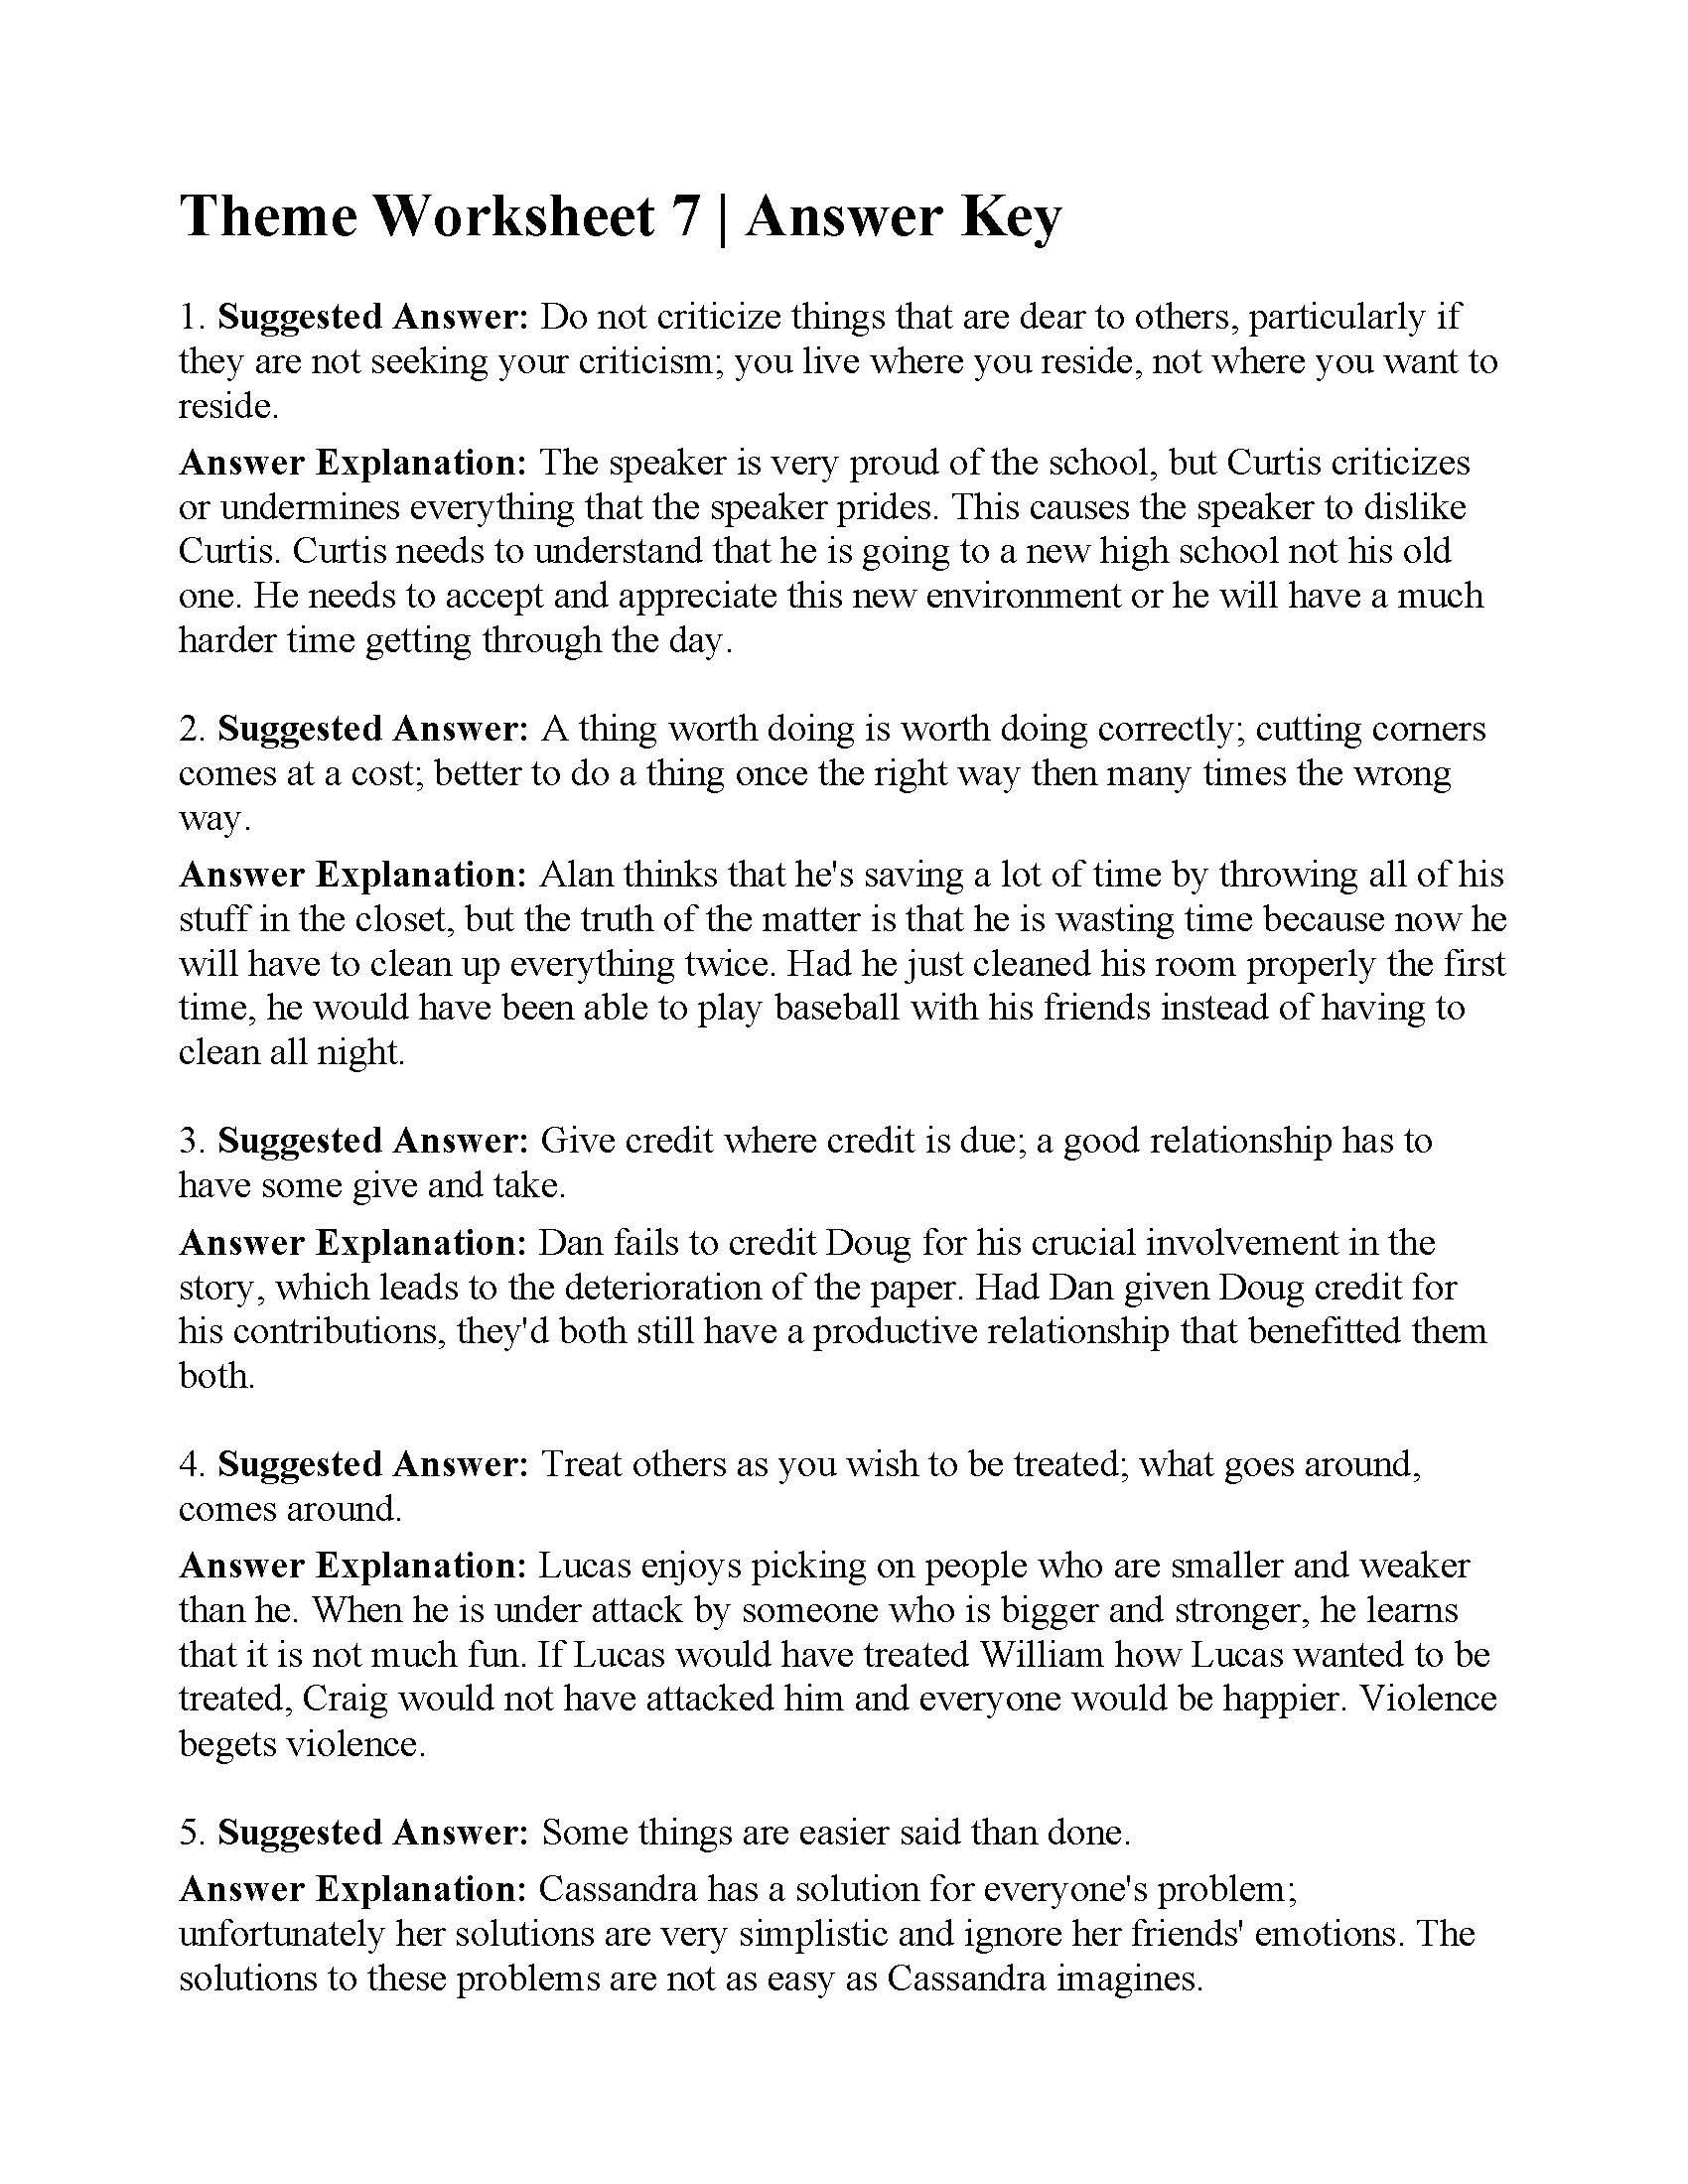 Theme Worksheets 5th Grade theme Worksheet 7